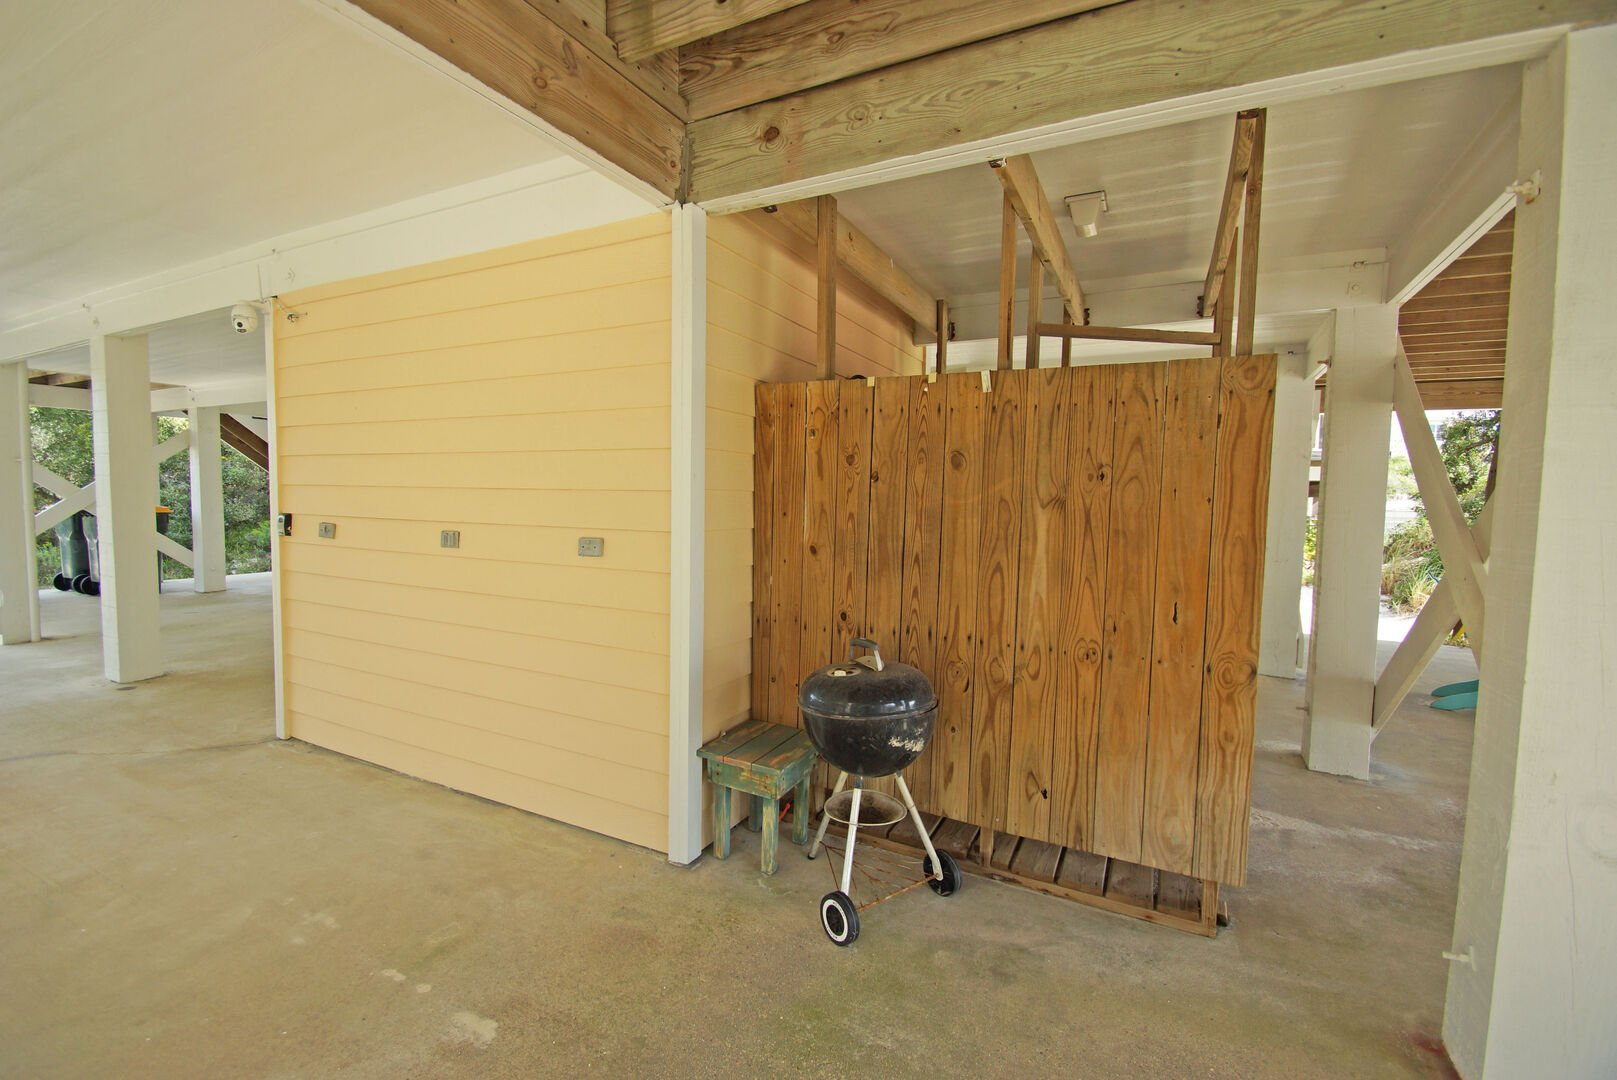 Vacation Rental Featured a Charcoal Grill.